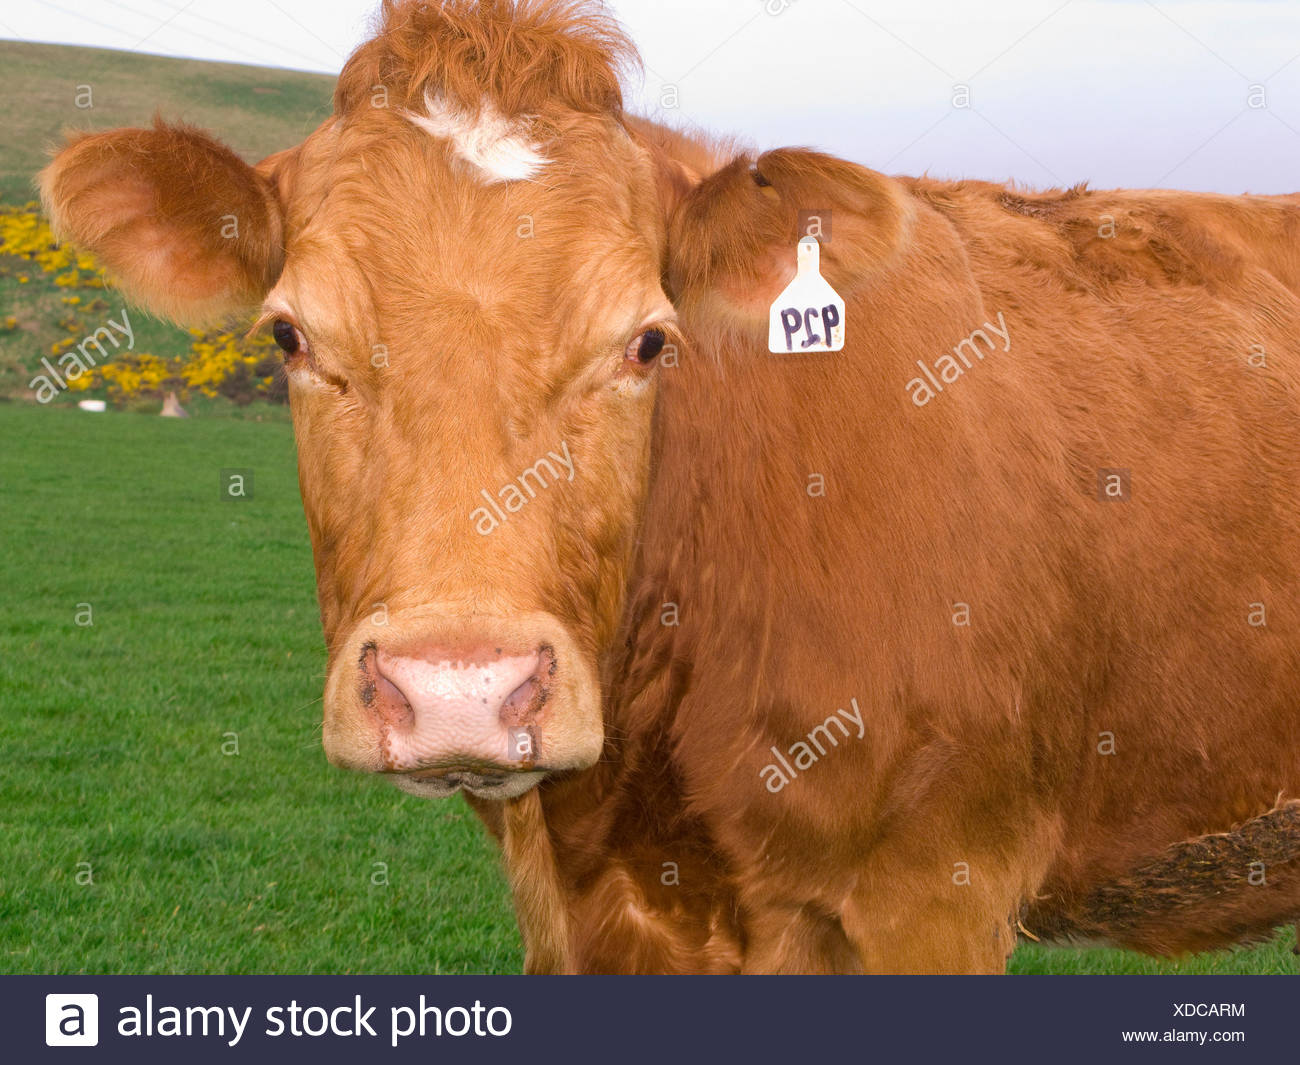 Close up of tagged cow standing in field Stock Photo